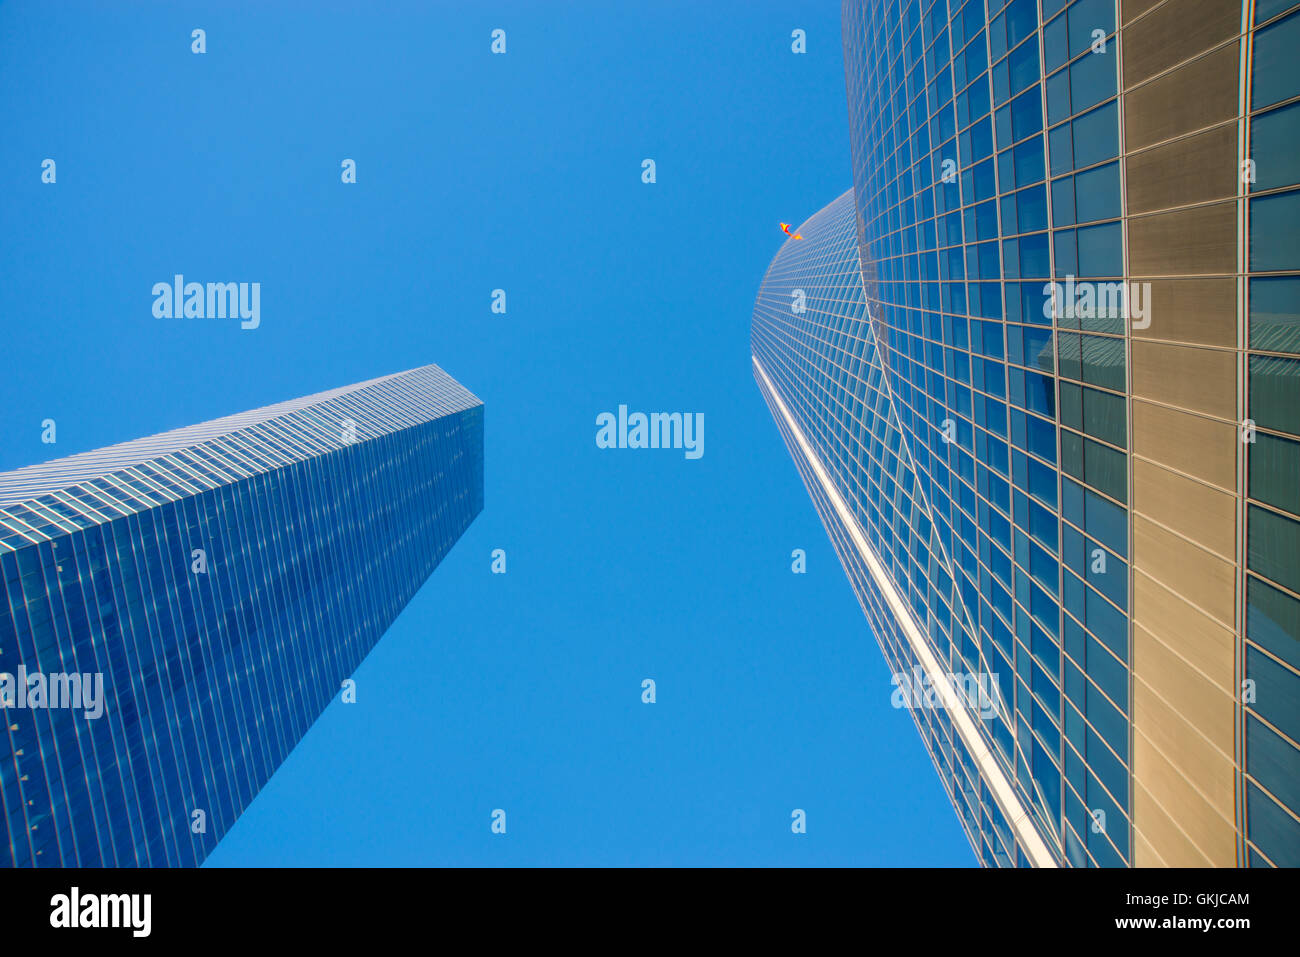 Espacio Tower and Cristal Tower, view from below. CTBA, Madrid, Spain. - Stock Image